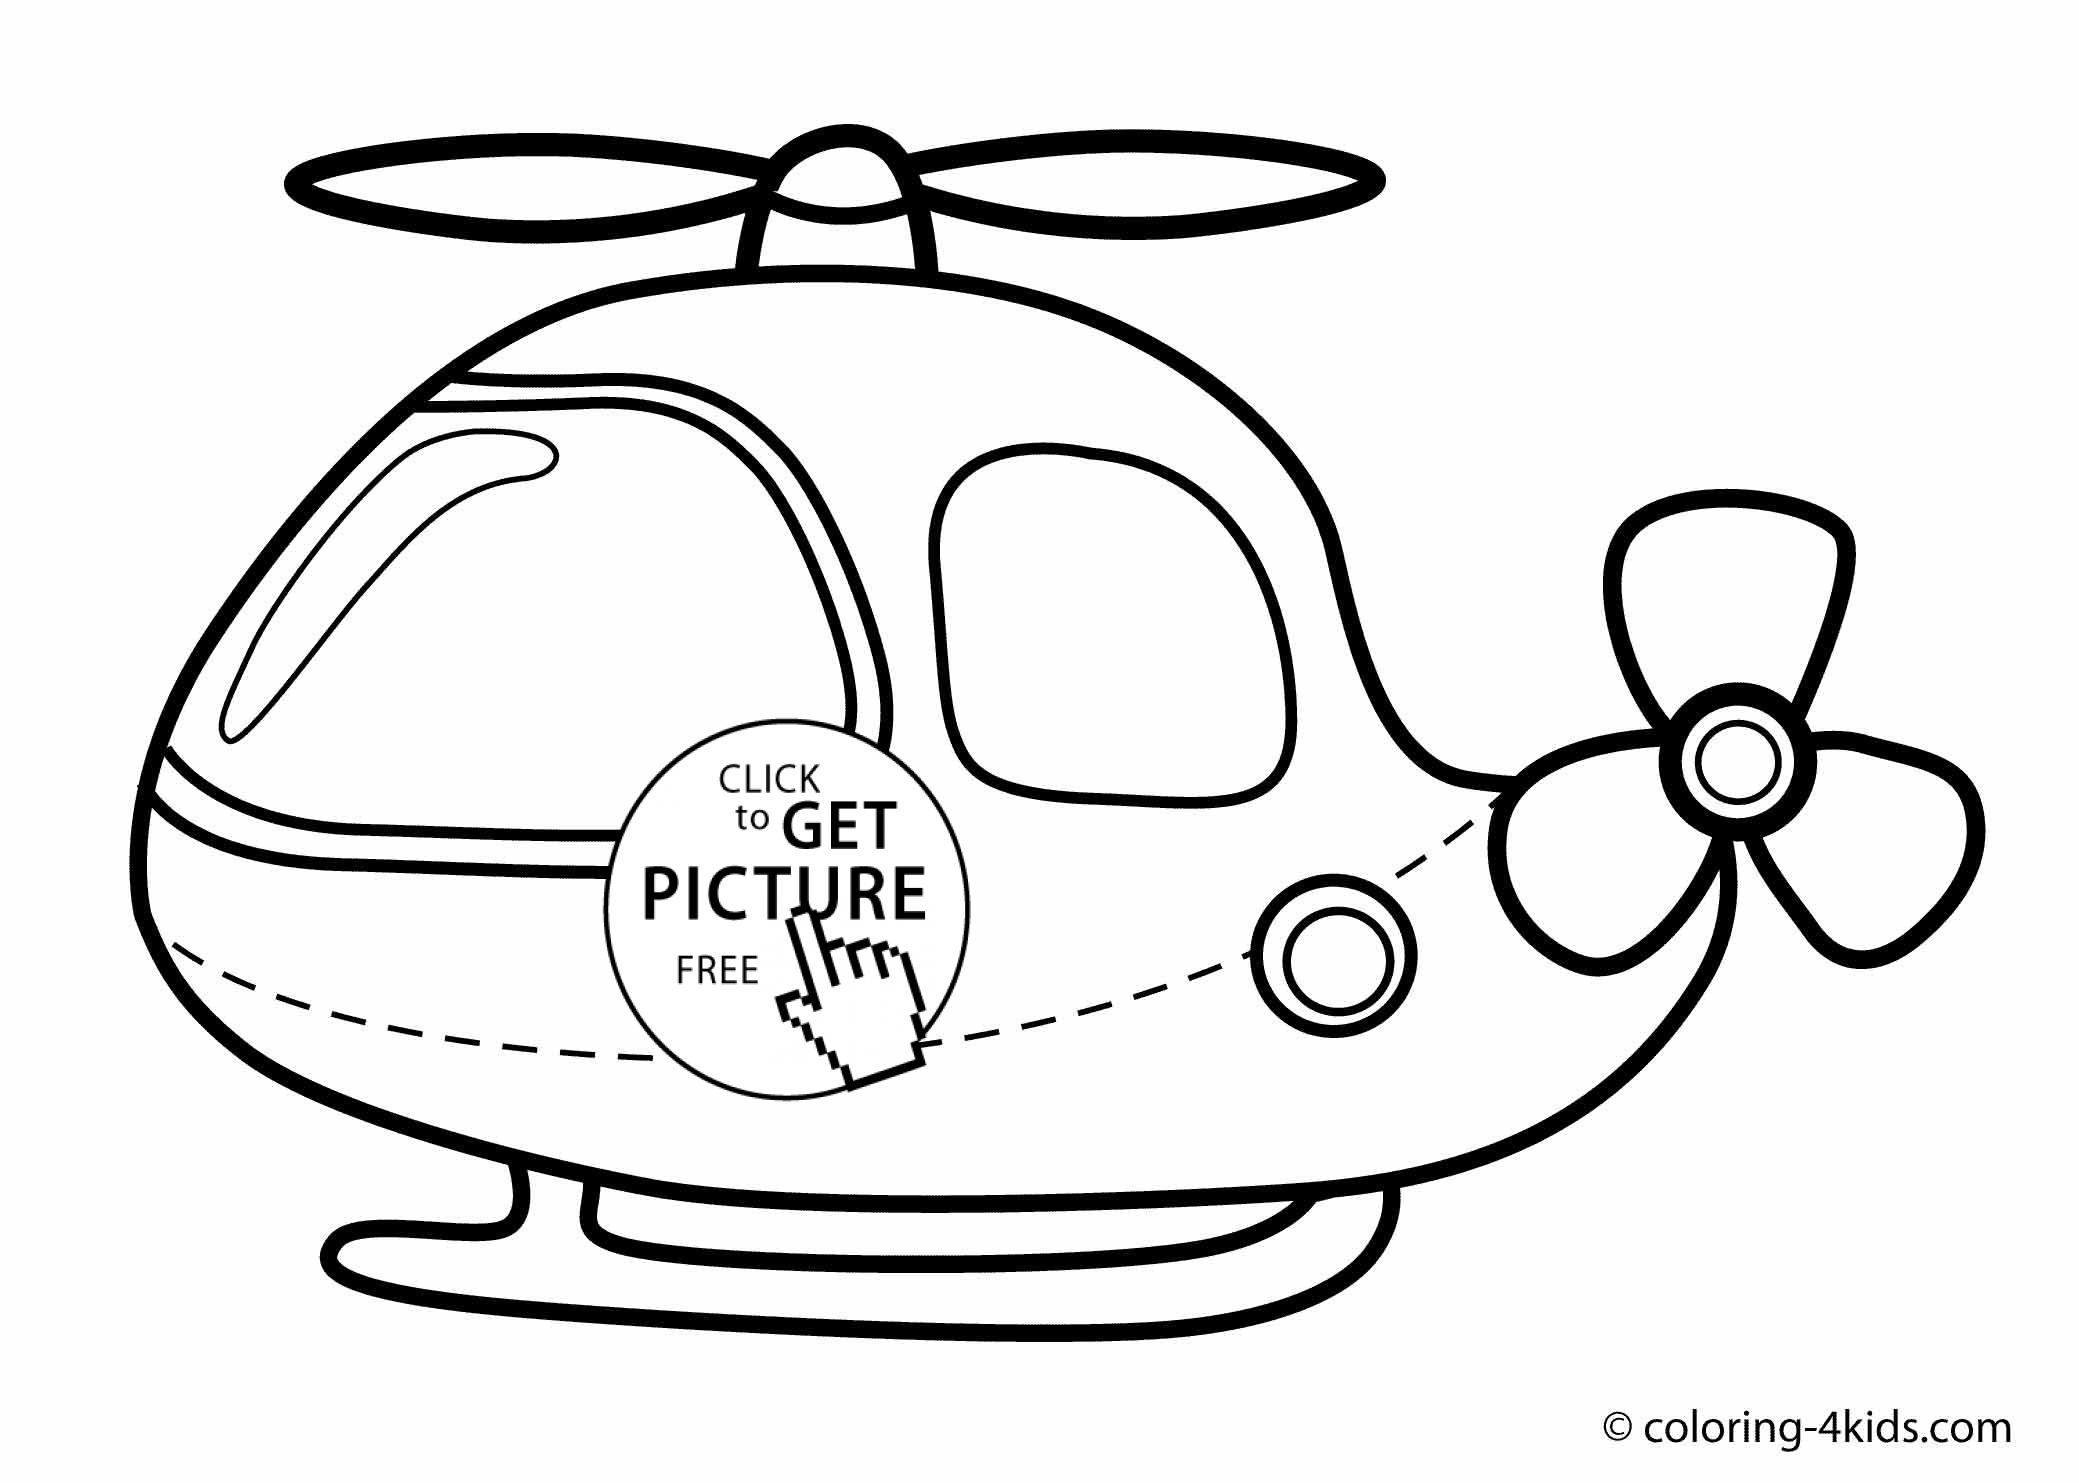 Preschool coloring games online free - Helicopter Coloring Page For Kids Printable Free Helicopter Coloring Books